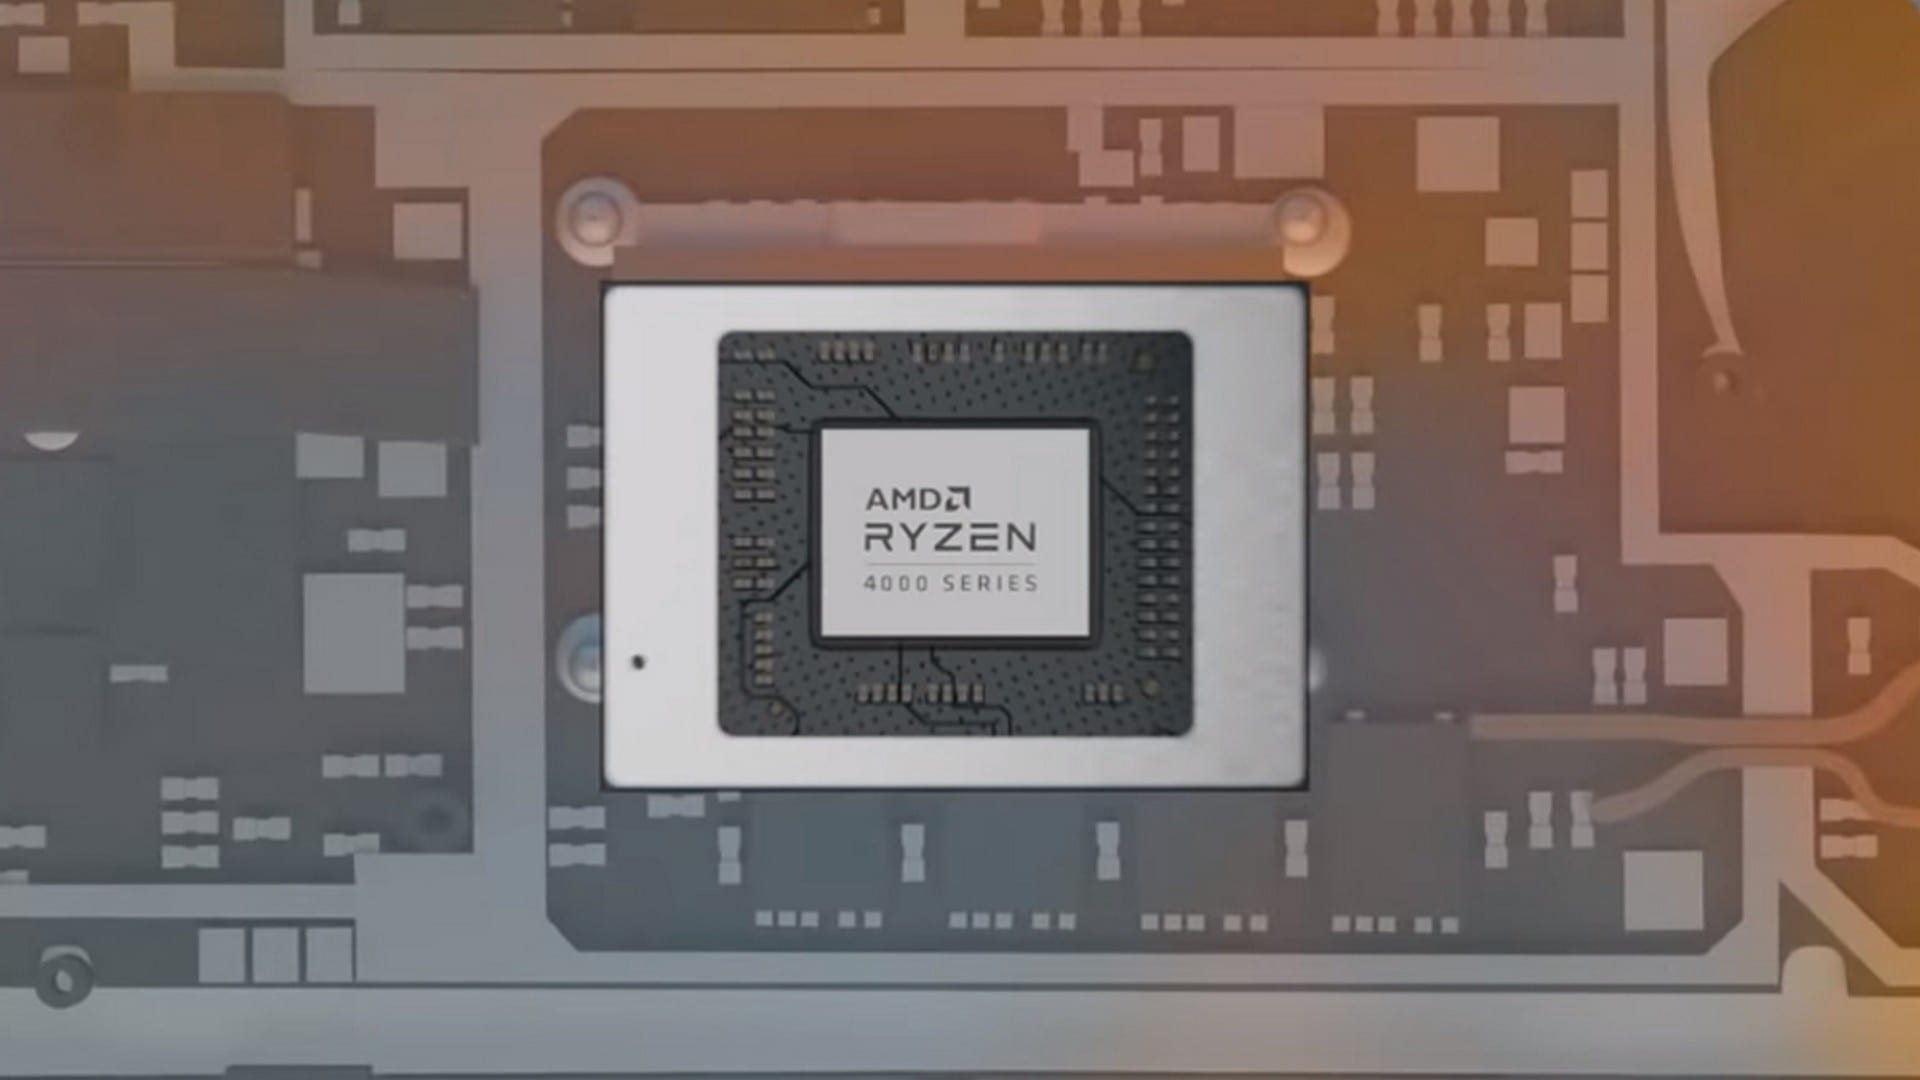 AMD Announces Further Ryzen Mobile 4000 Series Details and Introduces AMD Ryzen 9 4000H Series for Gaming Notebooks